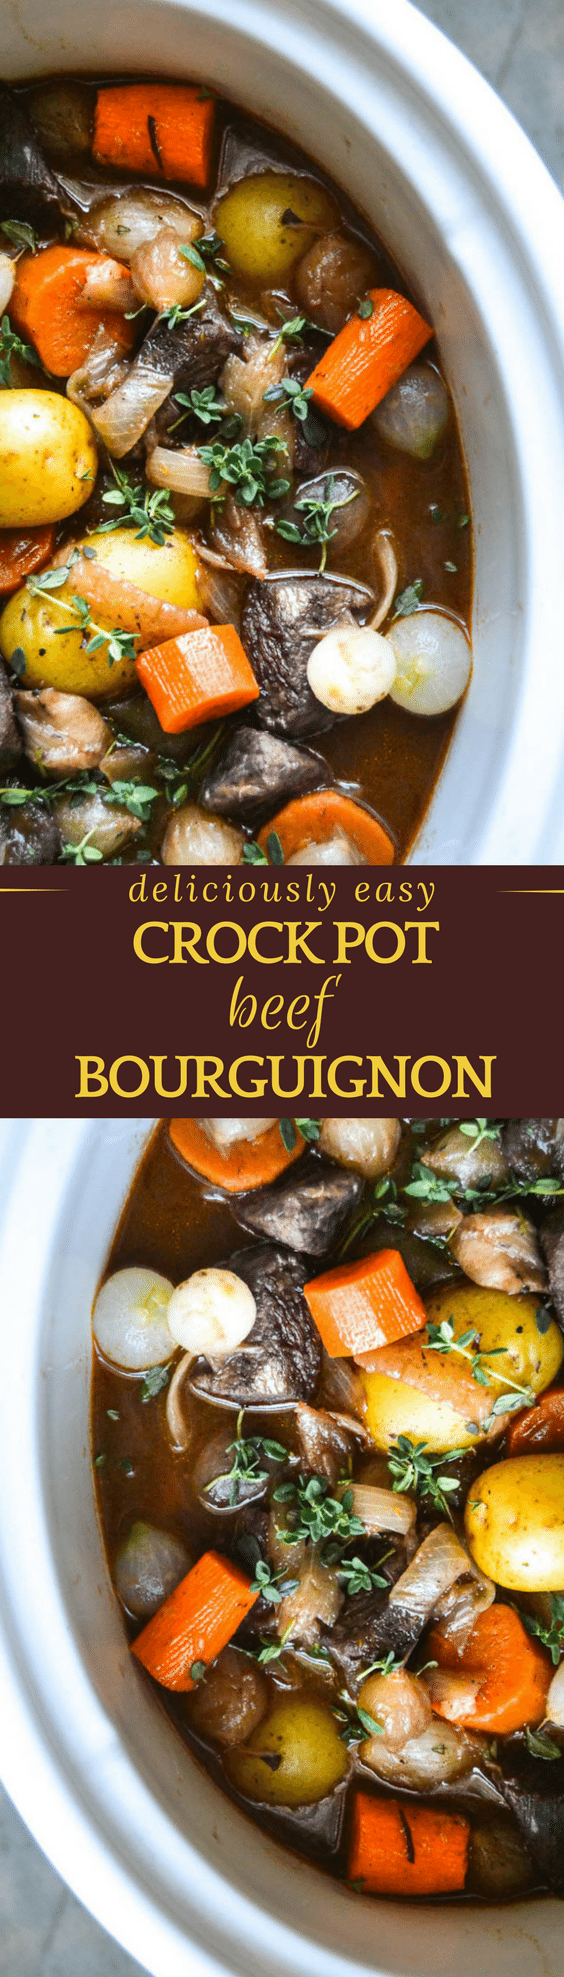 Slow Cooker/Crock Pot Beef Bourguignon pin